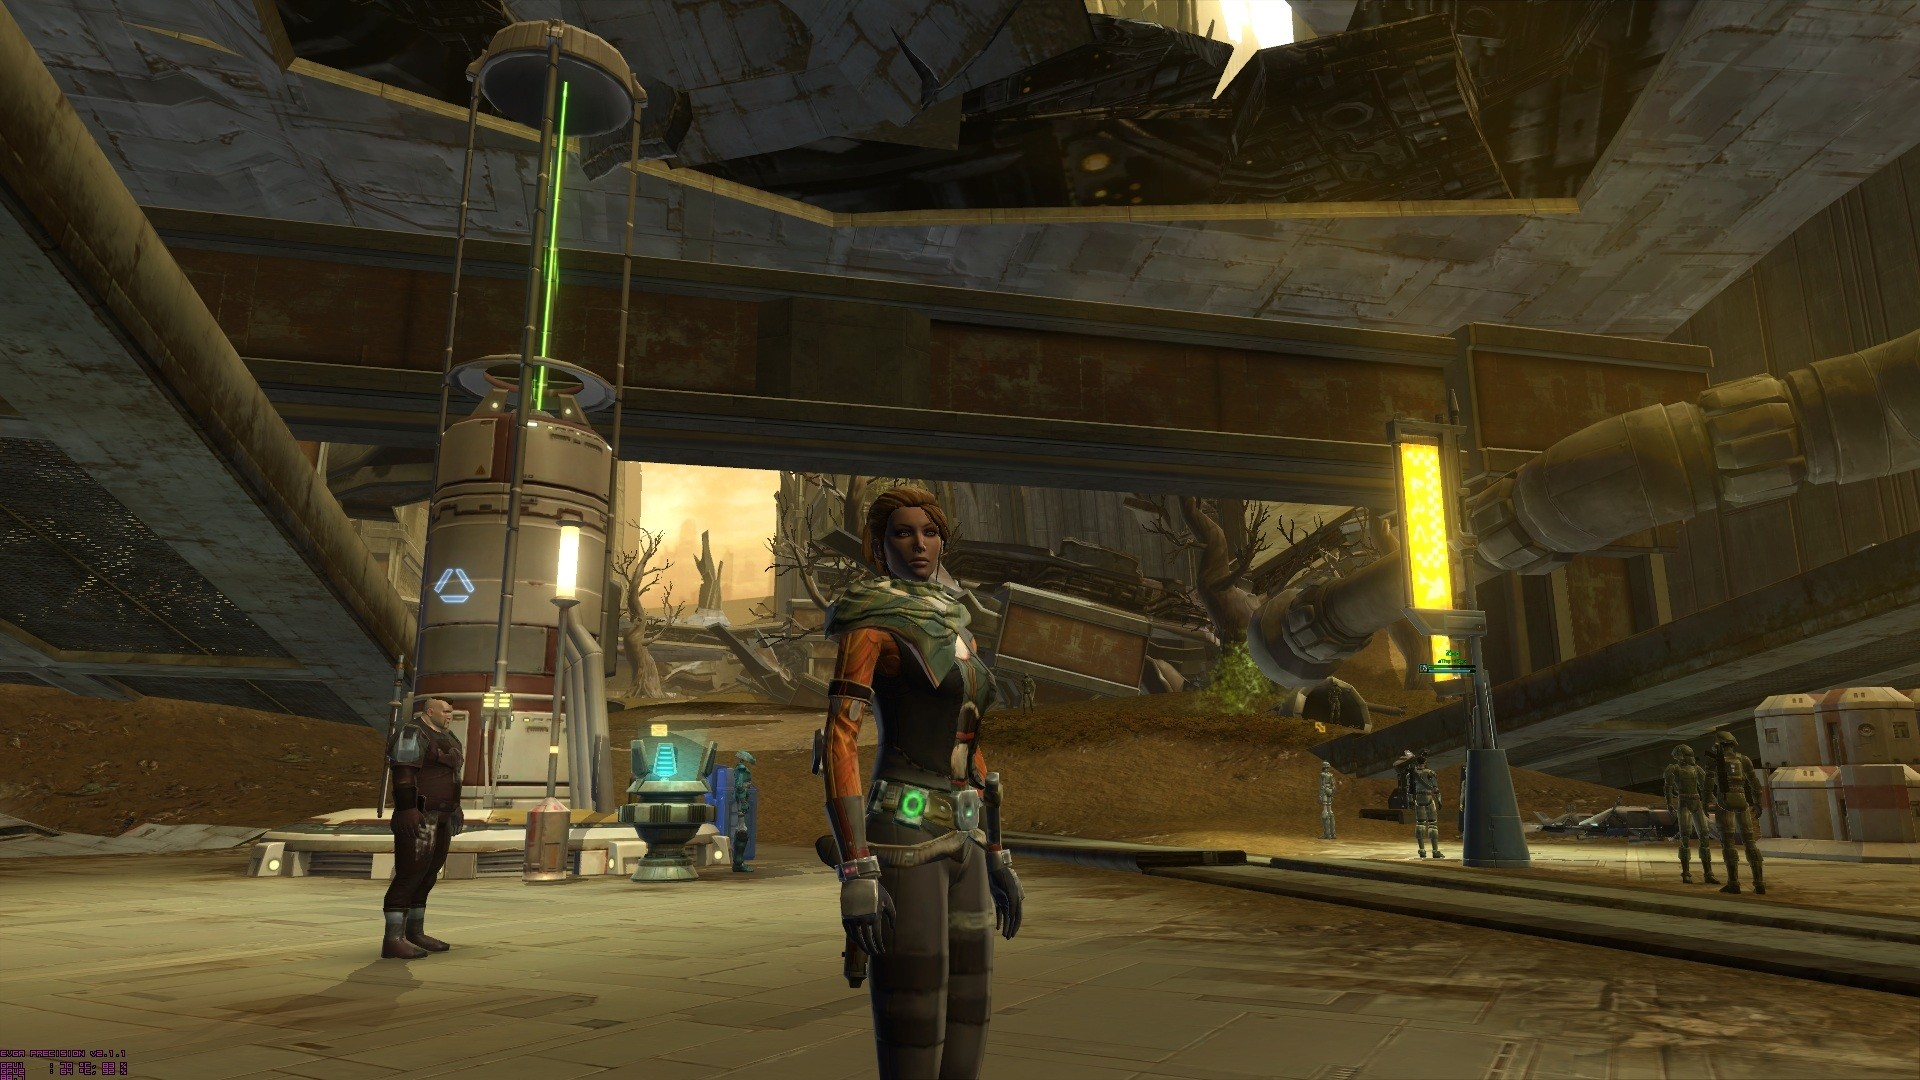 Star Wars: The Old Republic - SWTOR